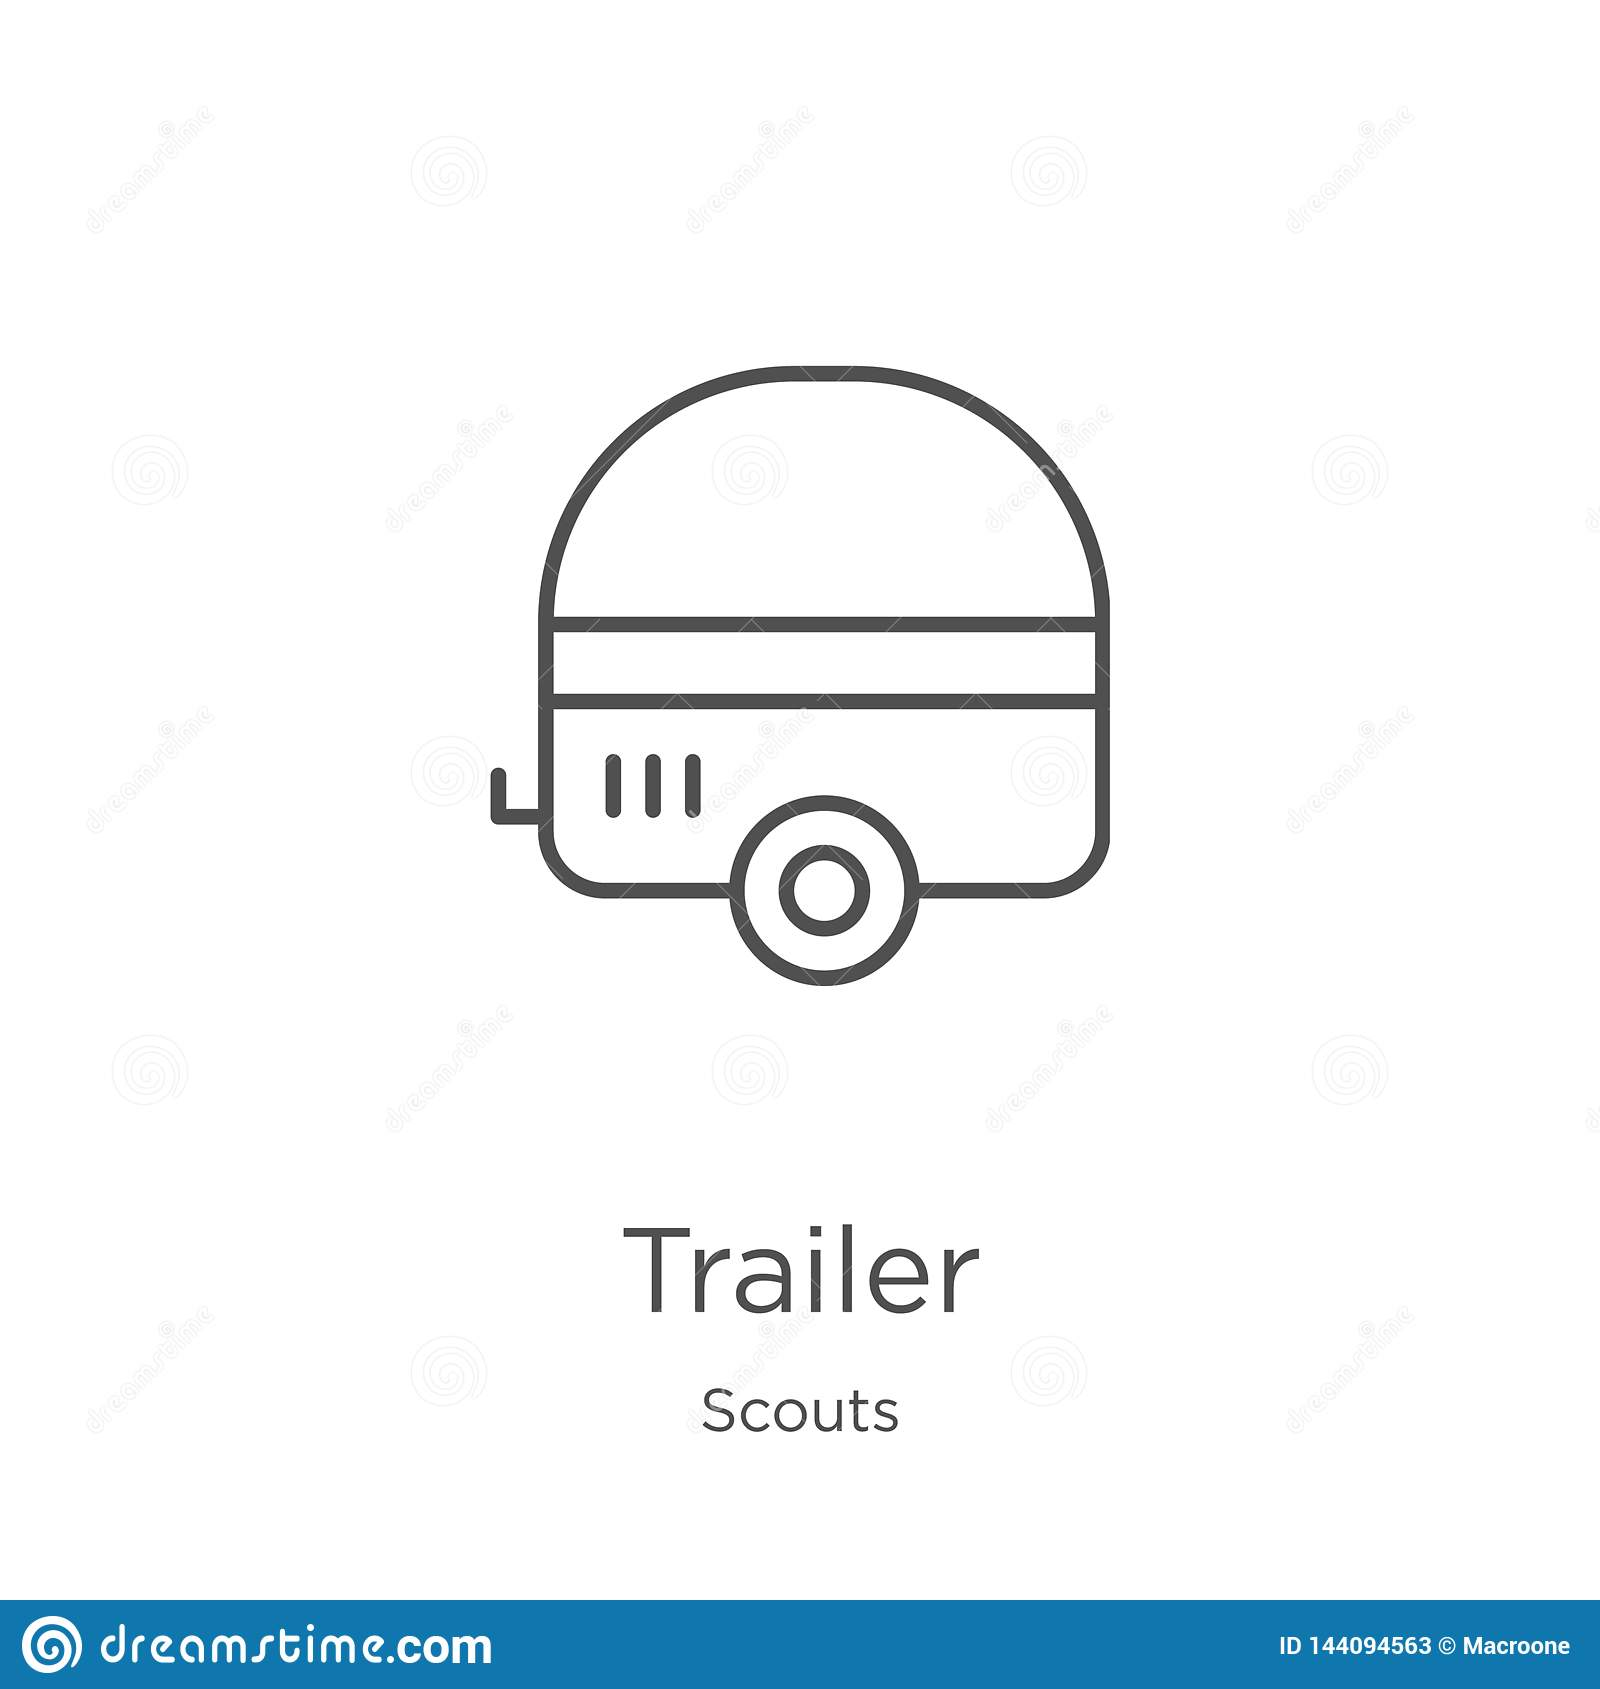 trailer icon vector from scouts collection. Thin line trailer outline icon vector illustration. Outline, thin line trailer icon